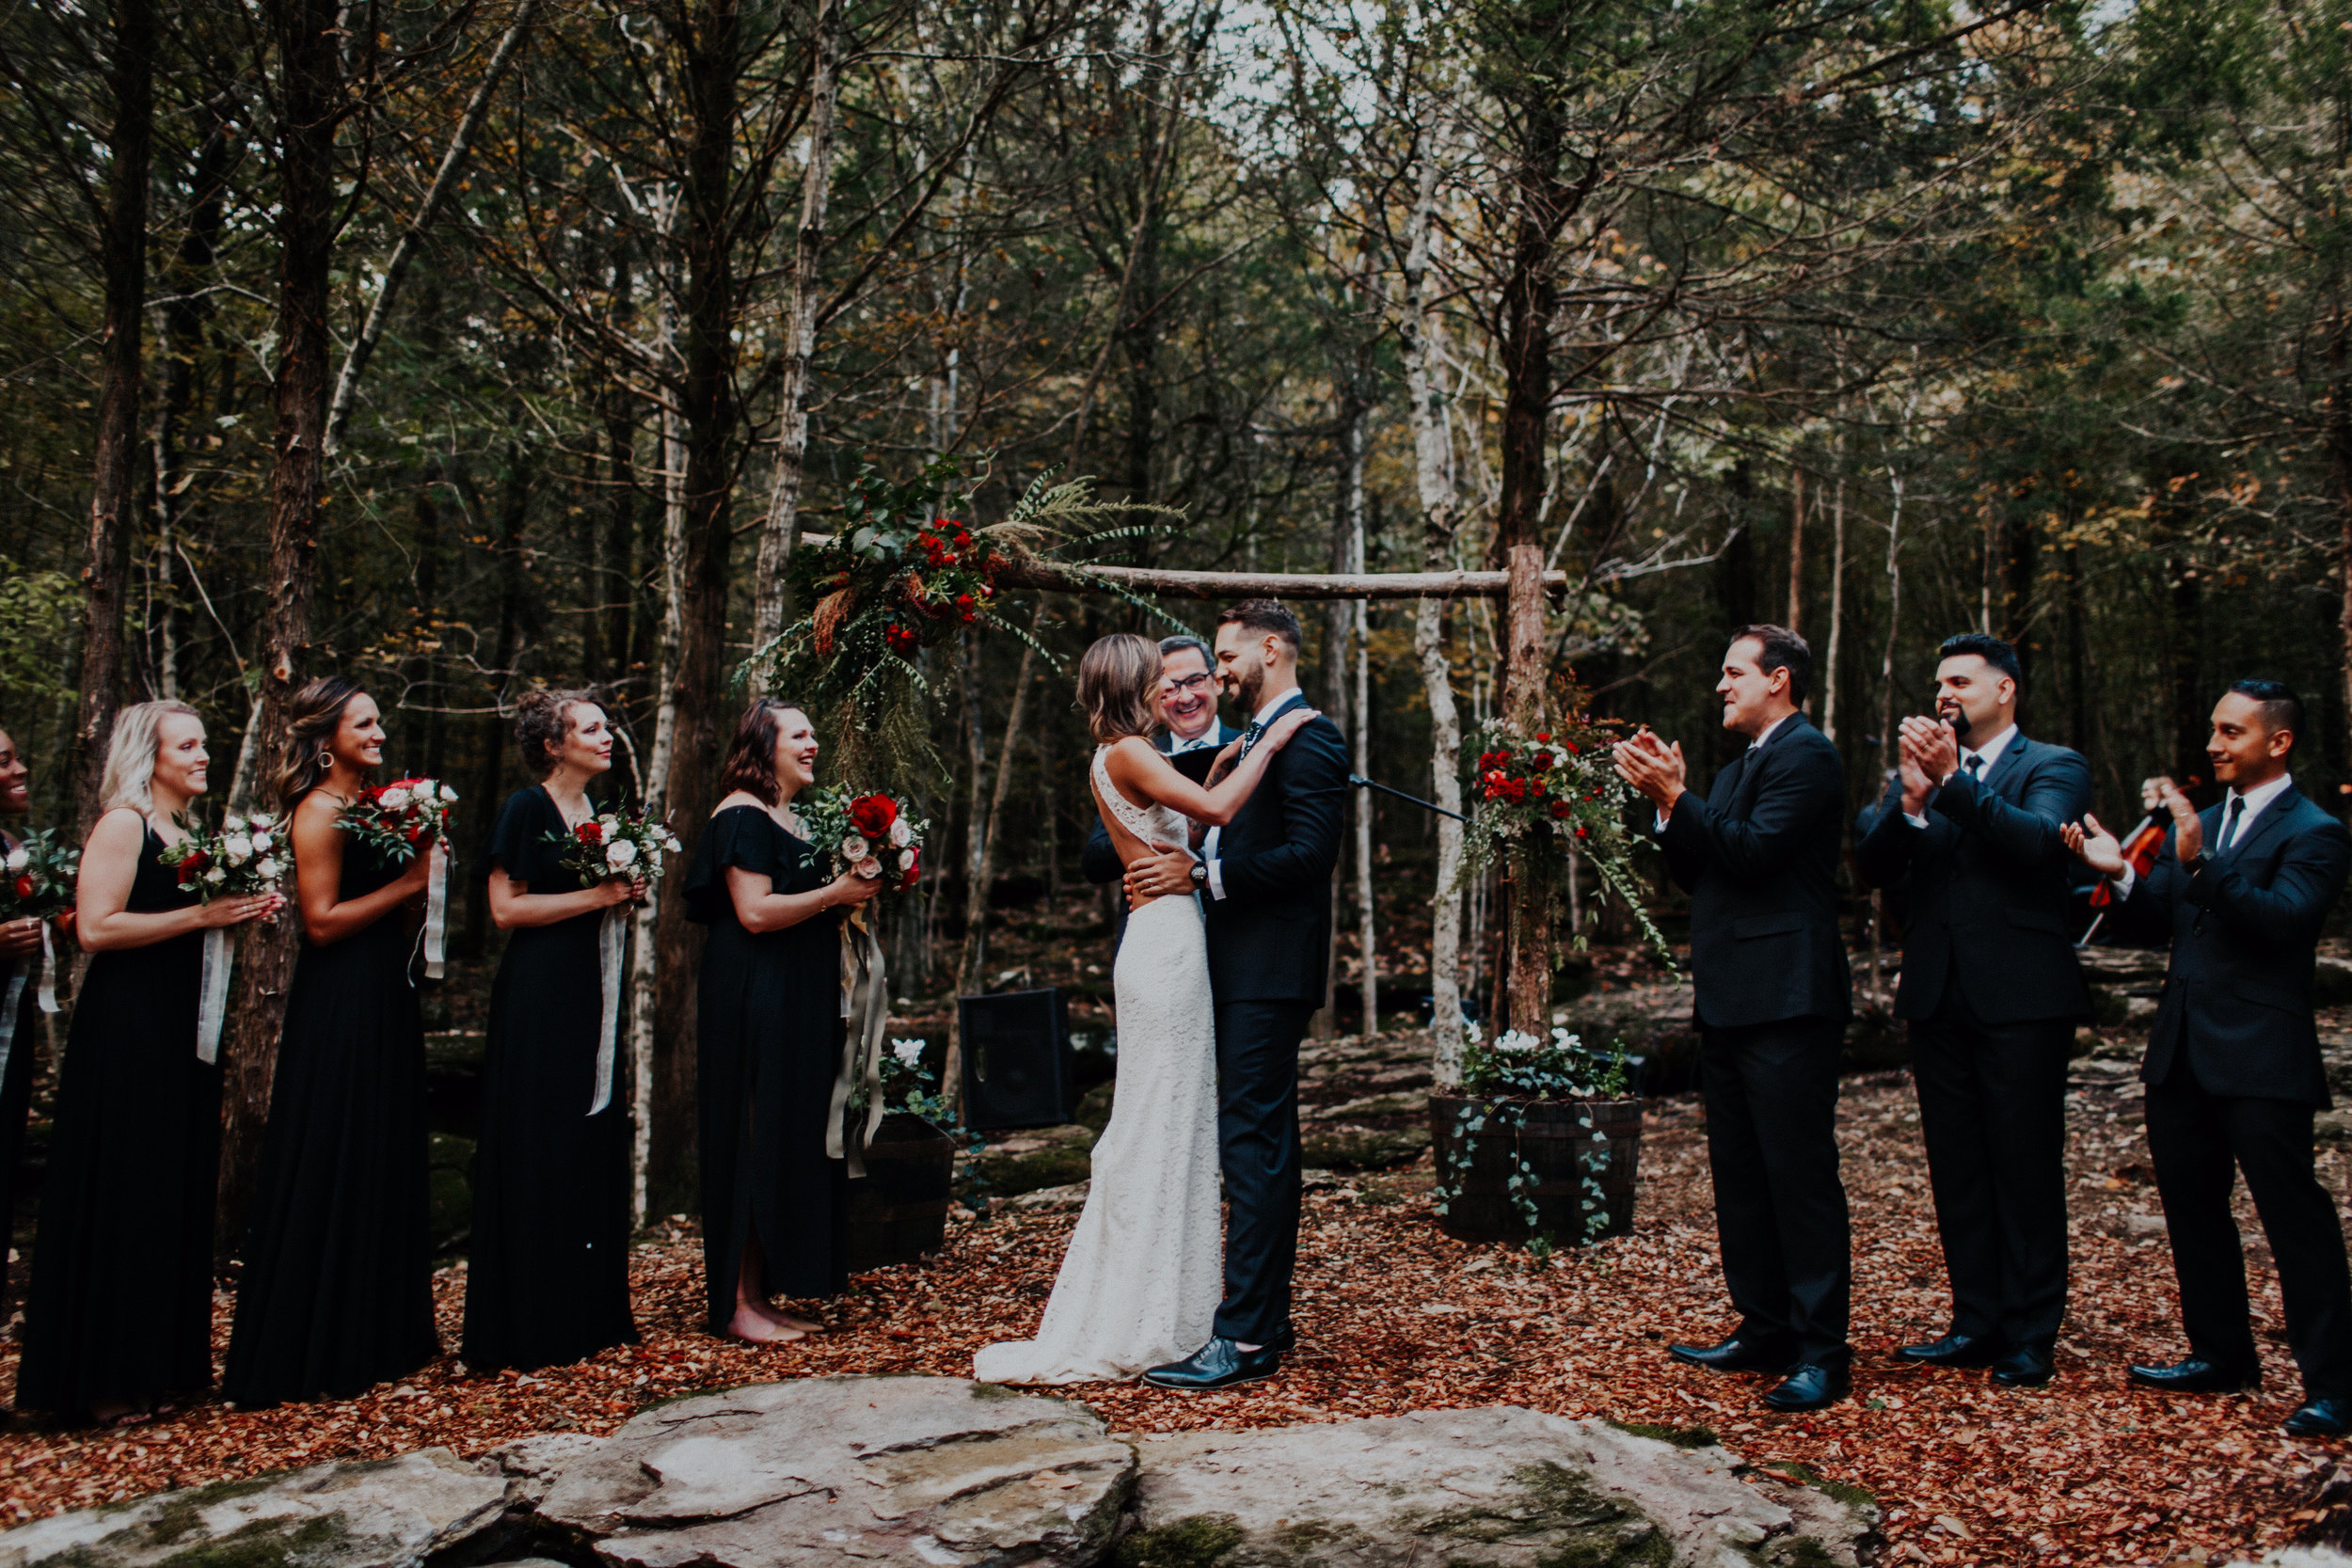 Spring, Summer or Fall, a wedding in the forest is a treat for you and your guests.